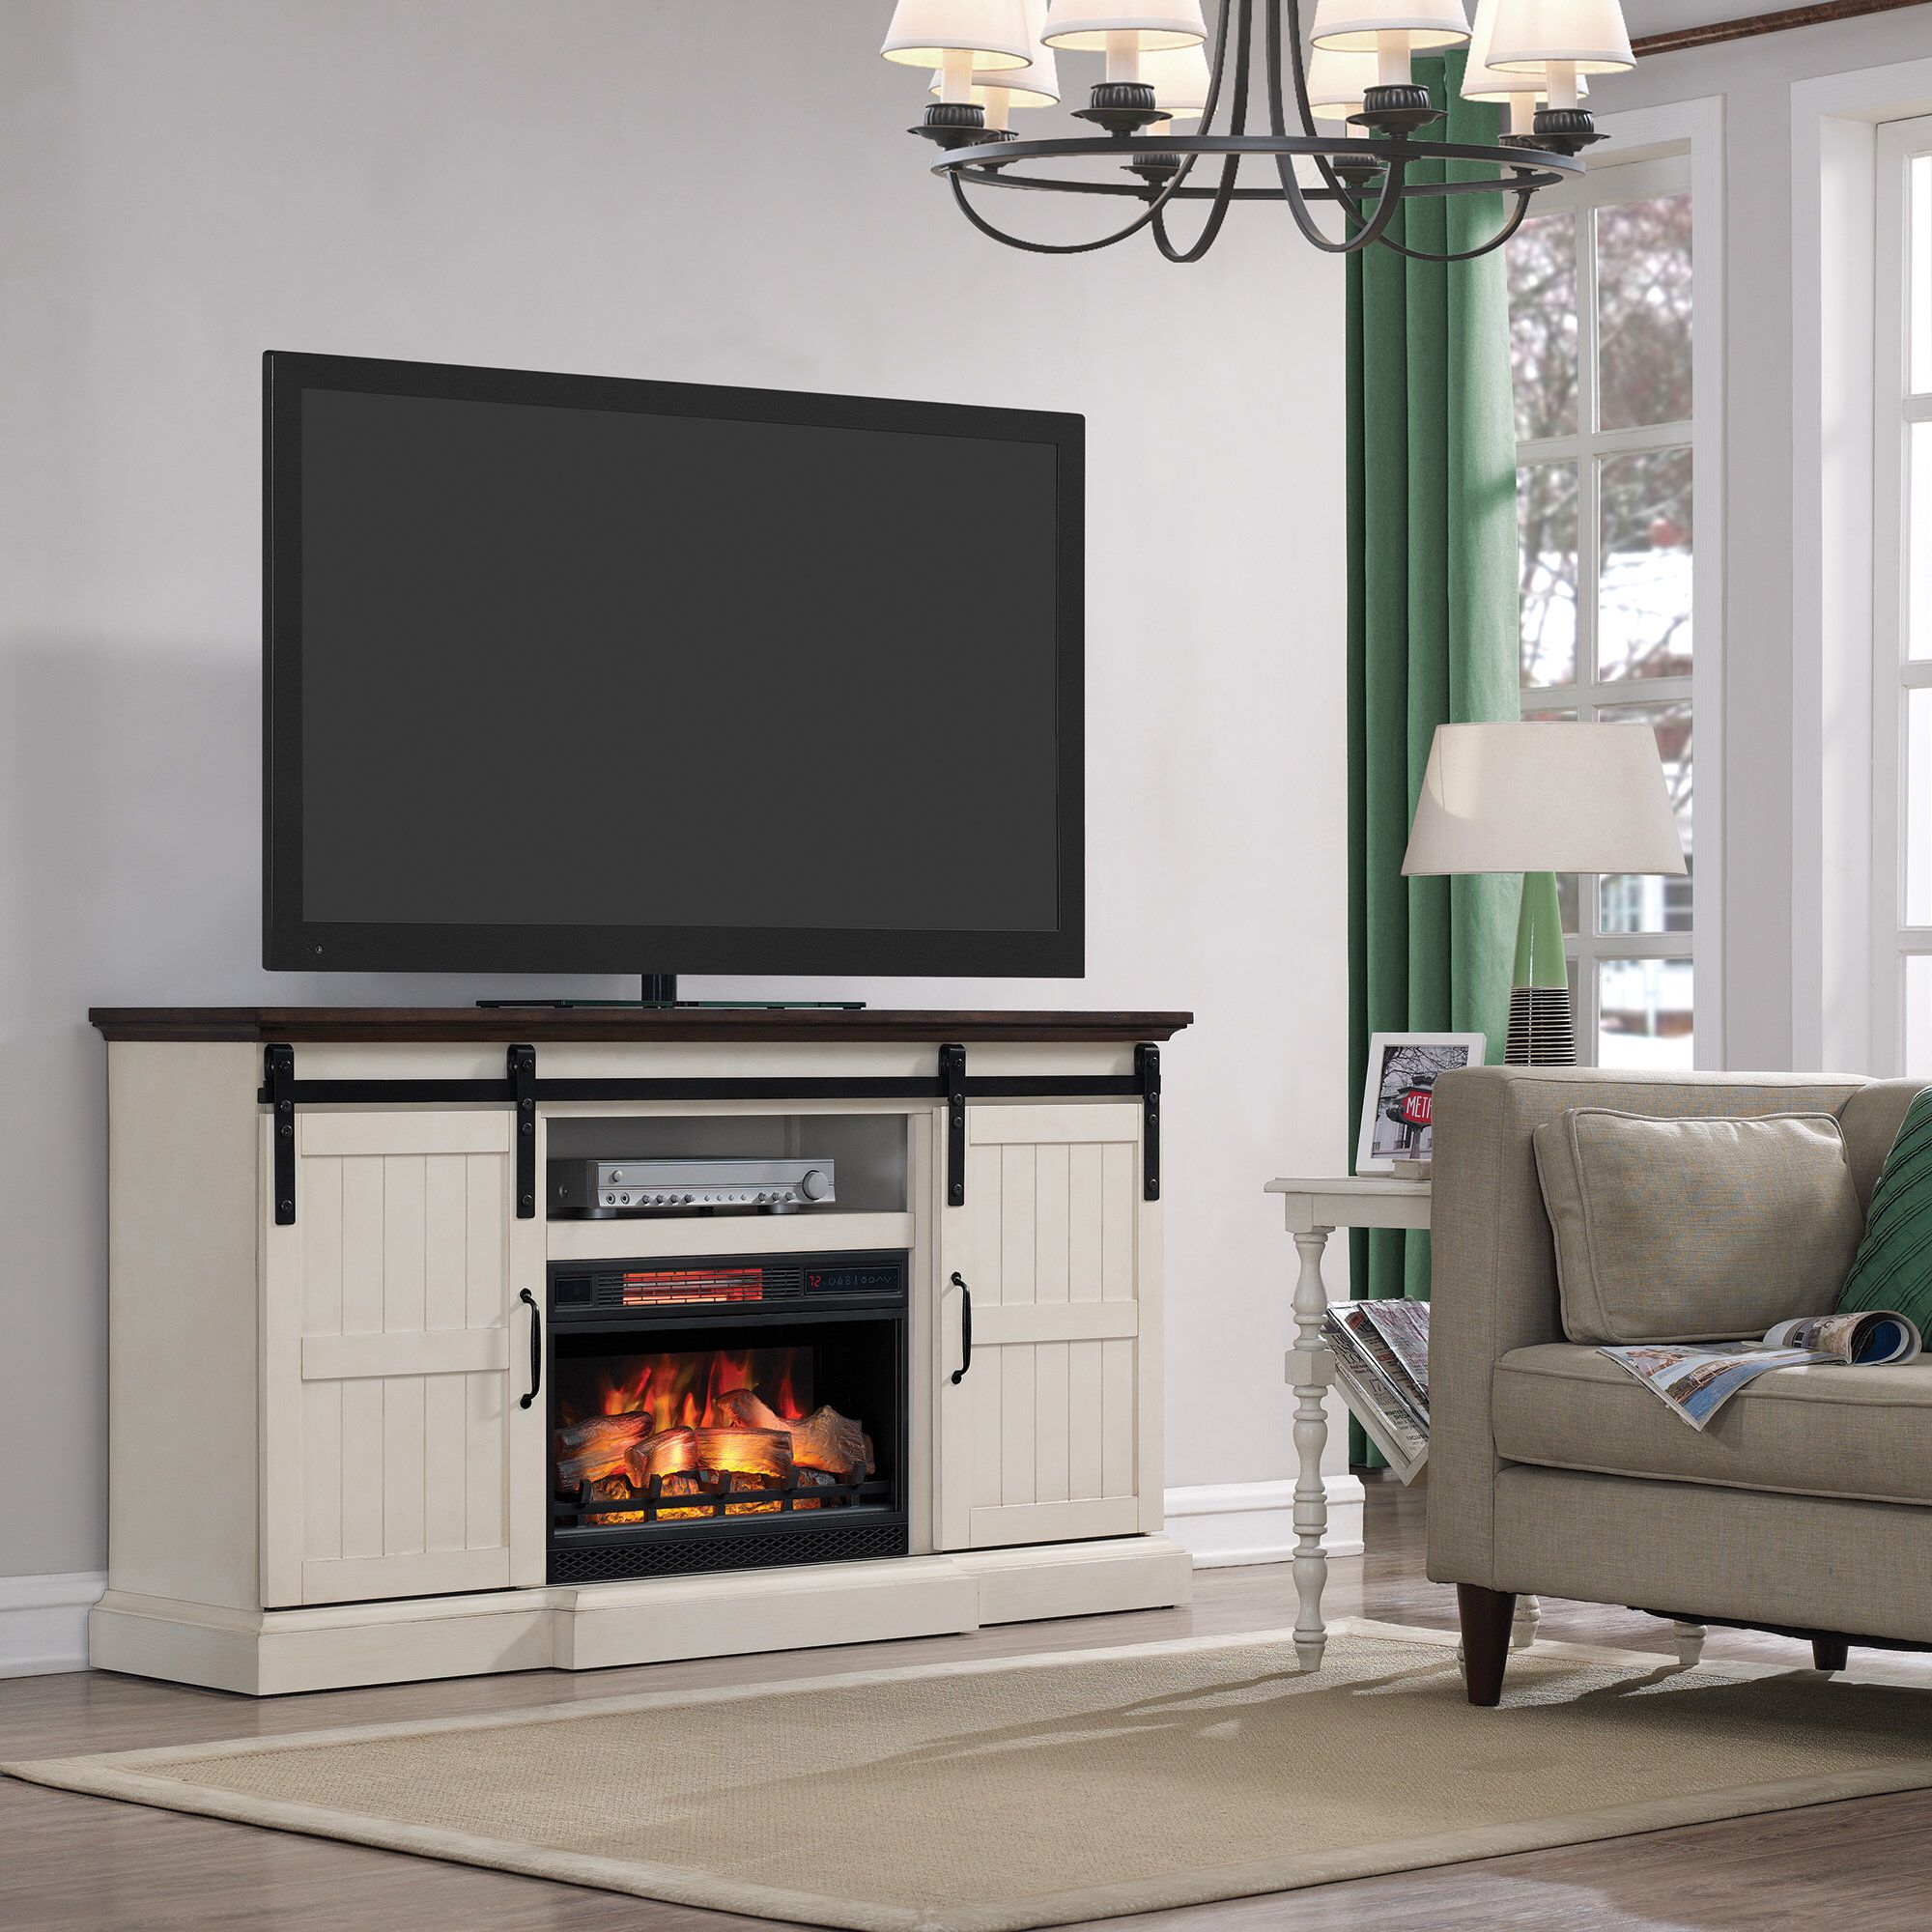 """Electric Fireplace with Sliding Barn Doors New Glendora 66 5"""" Tv Stand with Electric Fireplace"""